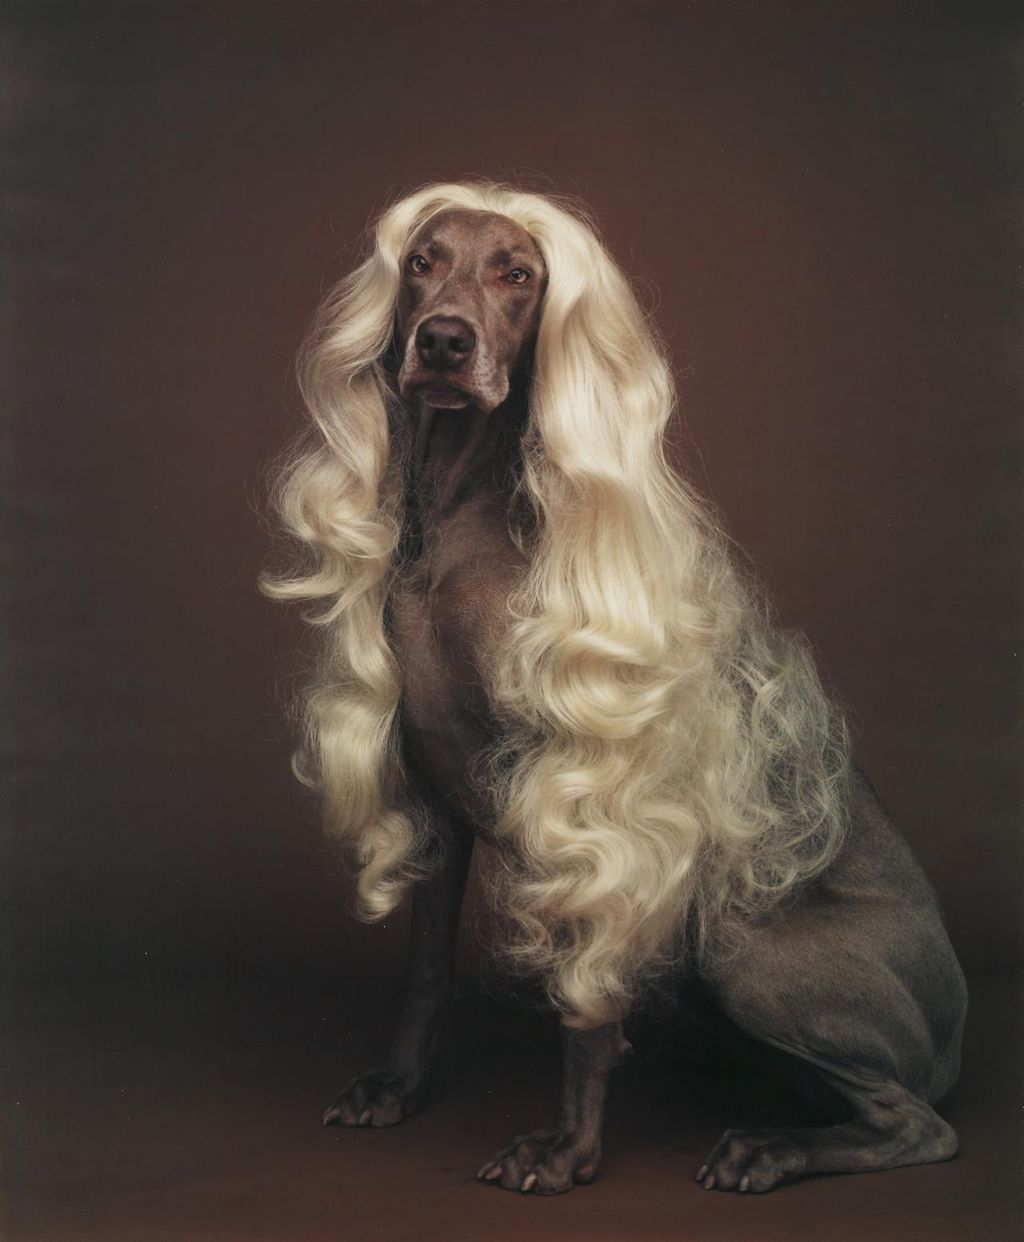 A dog in a blonde wig. National Gallery of Victoria, Melbourne Purchased, 1992 © William Wegman This digital record has been made available on NGV Collection Online through the generous support of the Bowness Family Foundation